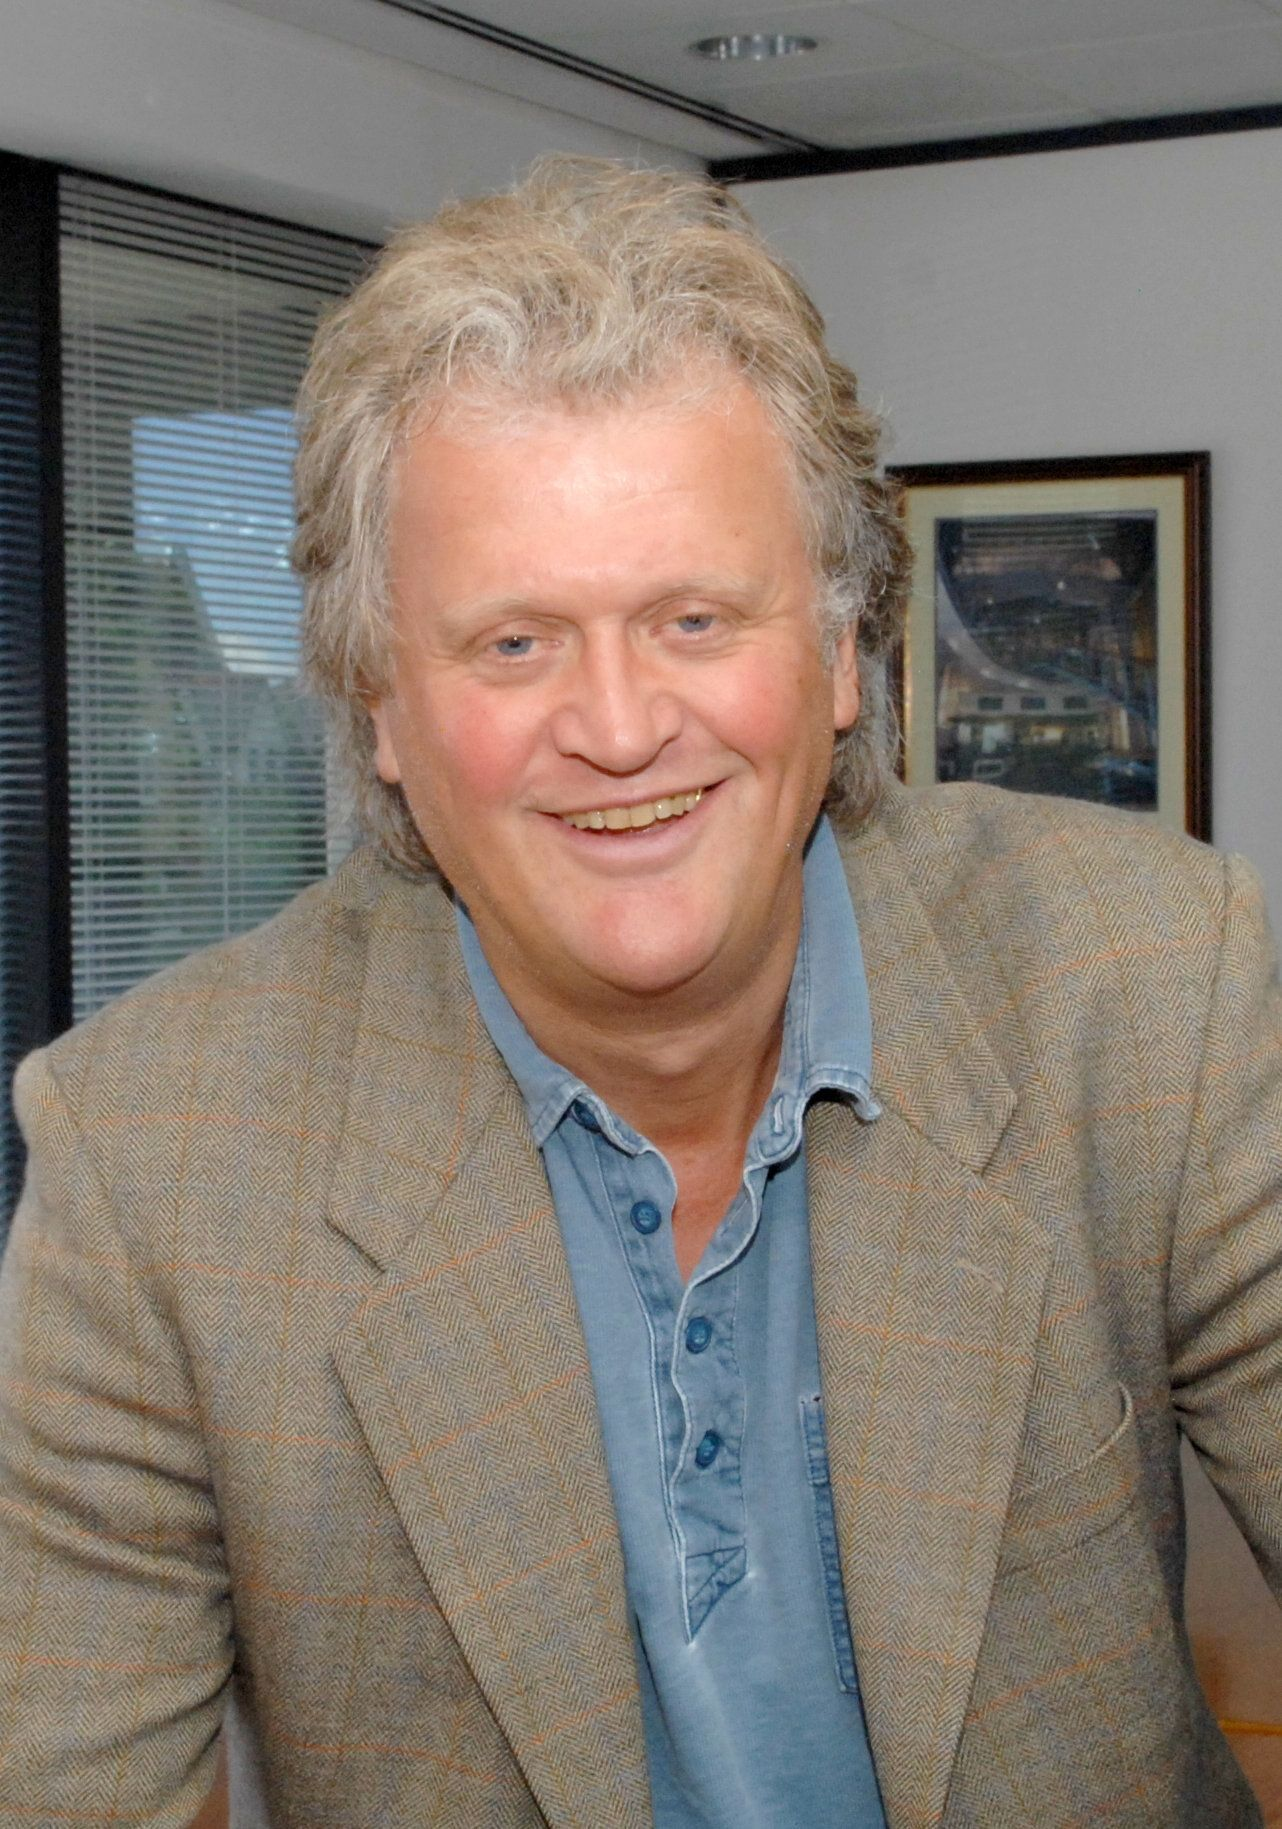 <strong>Tim Martin is '100% sure' he's right on Brexit. Just don't ask him for a refund if he's wrong.</strong>